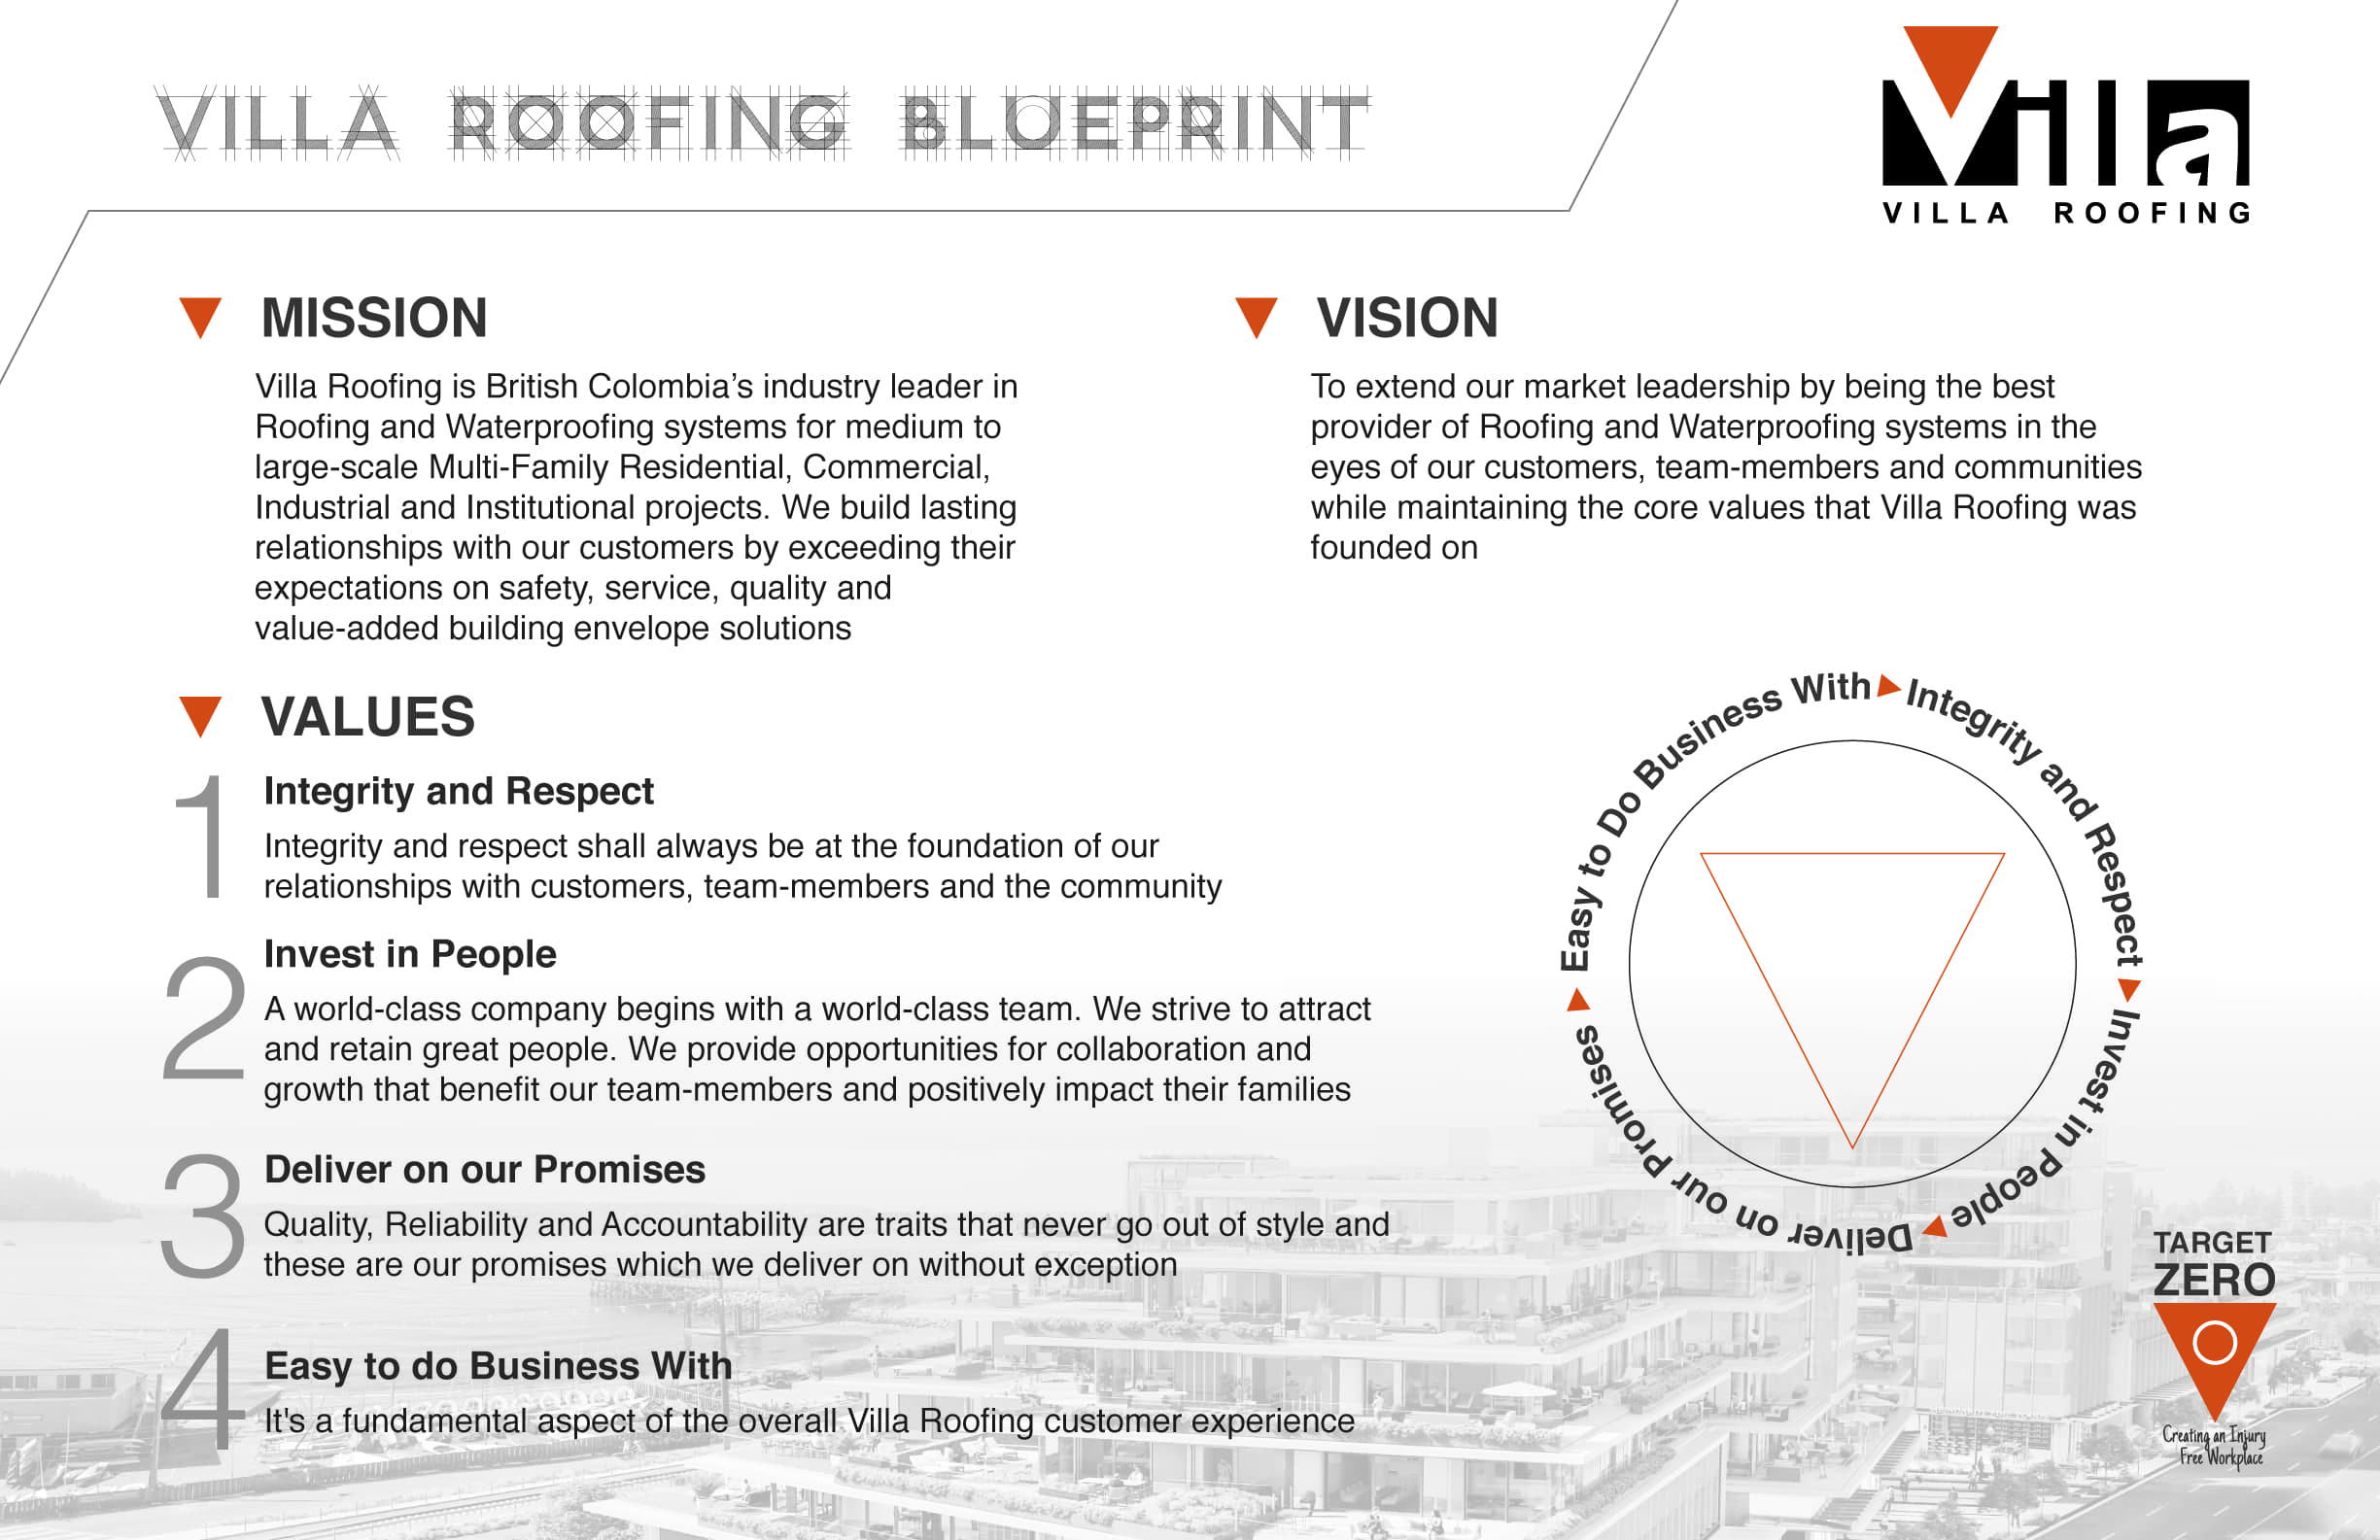 About us villa roofing bcs industry leader in roofing and lasting relationships with our customers by exceeding their expectations on safety service quality and value added building envelope solutions malvernweather